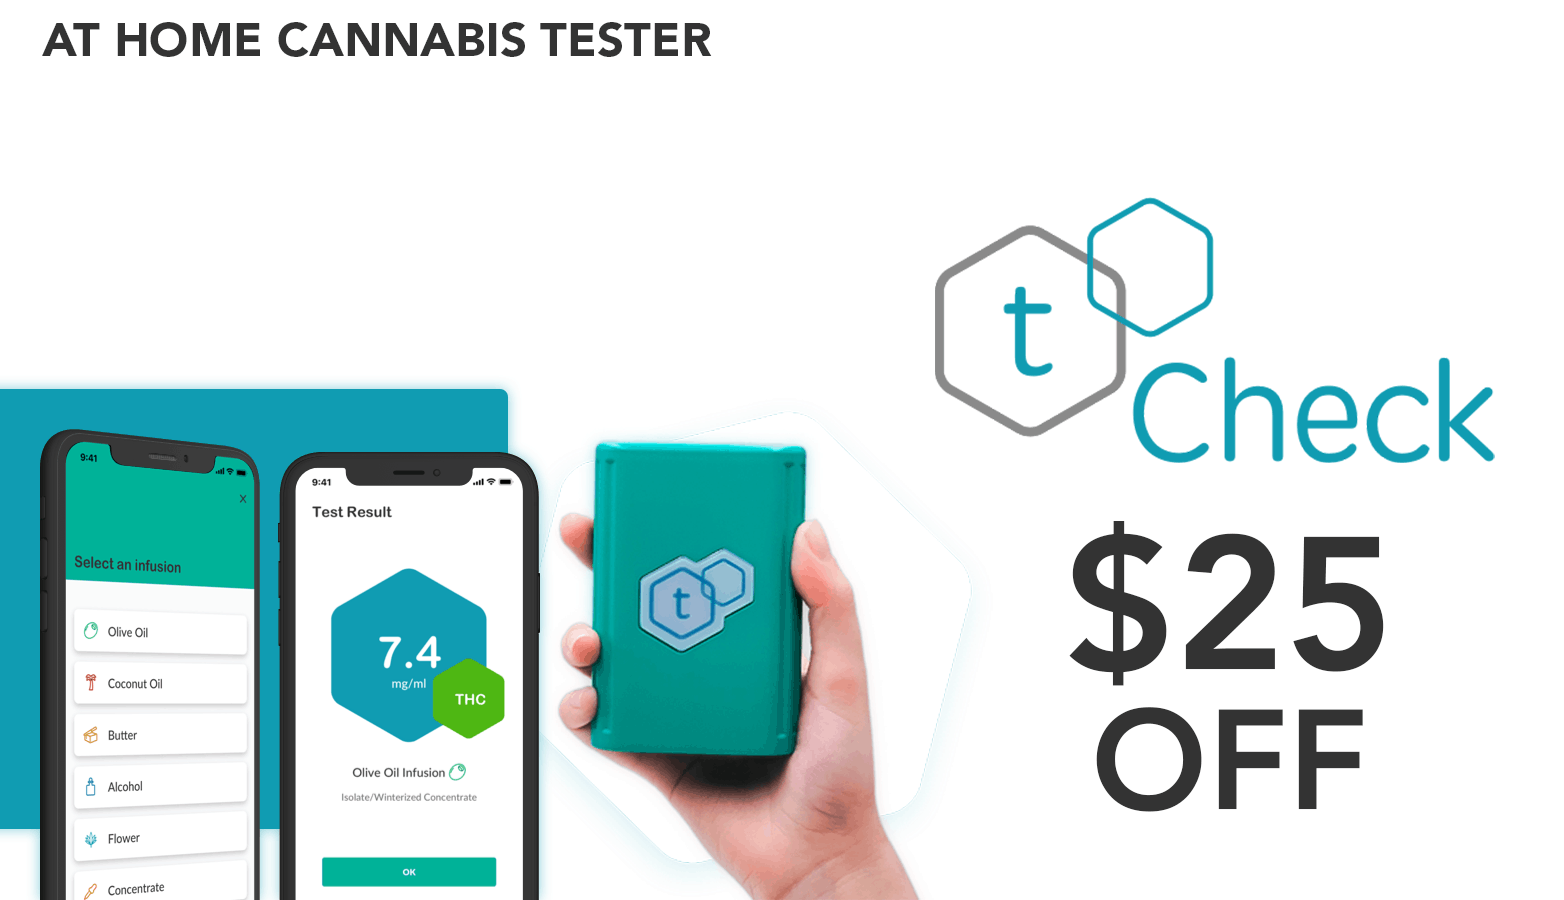 tCheck CBD Coupon Code discounts promos save on cannabis online website